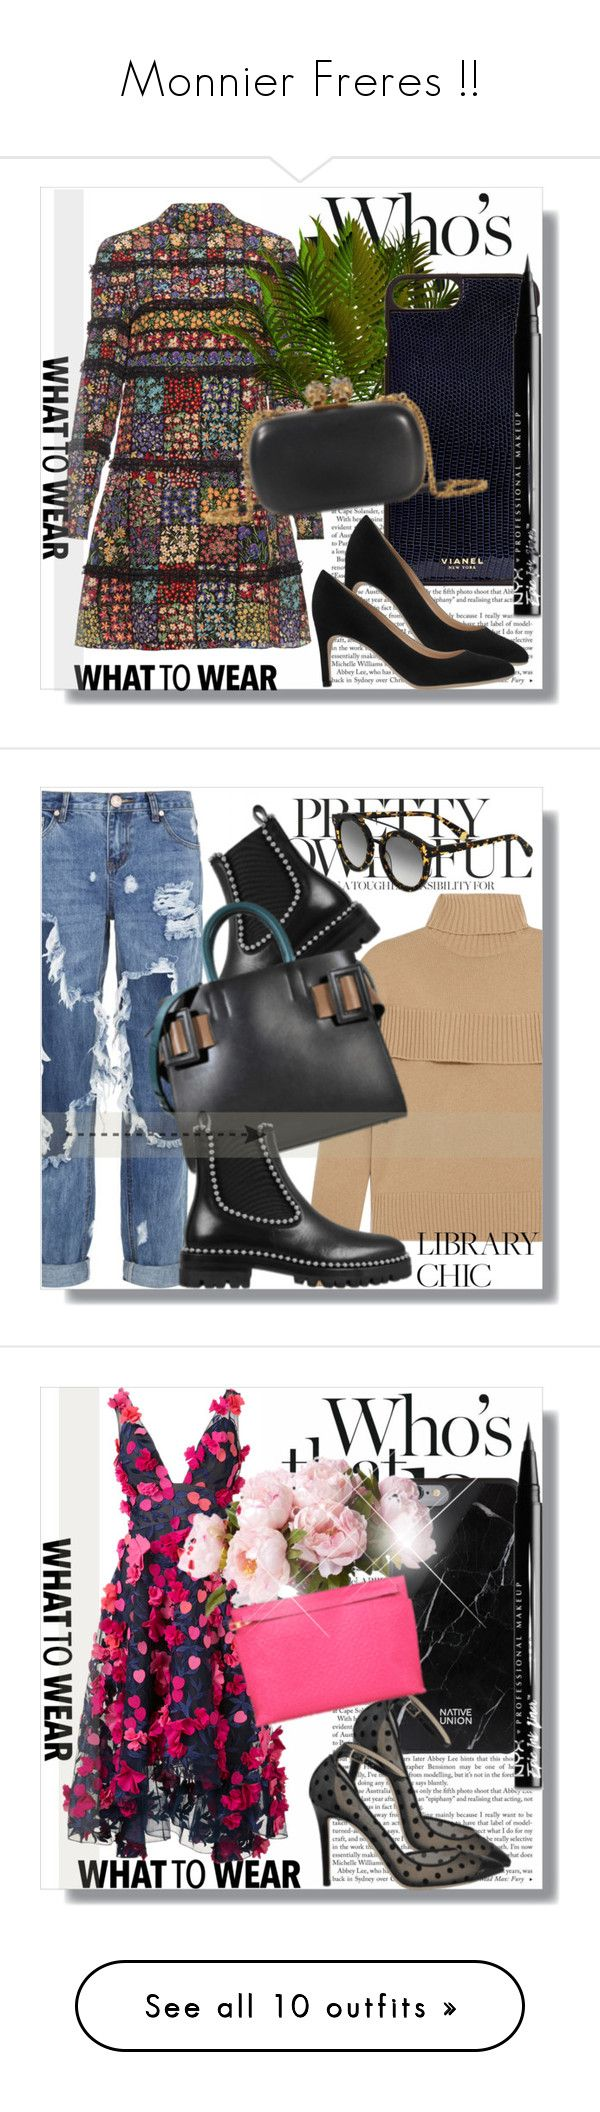 """""""Monnier Freres !!"""" by dianagrigoryan ❤ liked on Polyvore featuring Valentino, Vianel, Sergio Rossi, NYX, Chloé, OneTeaspoon, Alexander Wang, Marni, STELLA McCARTNEY and finals"""